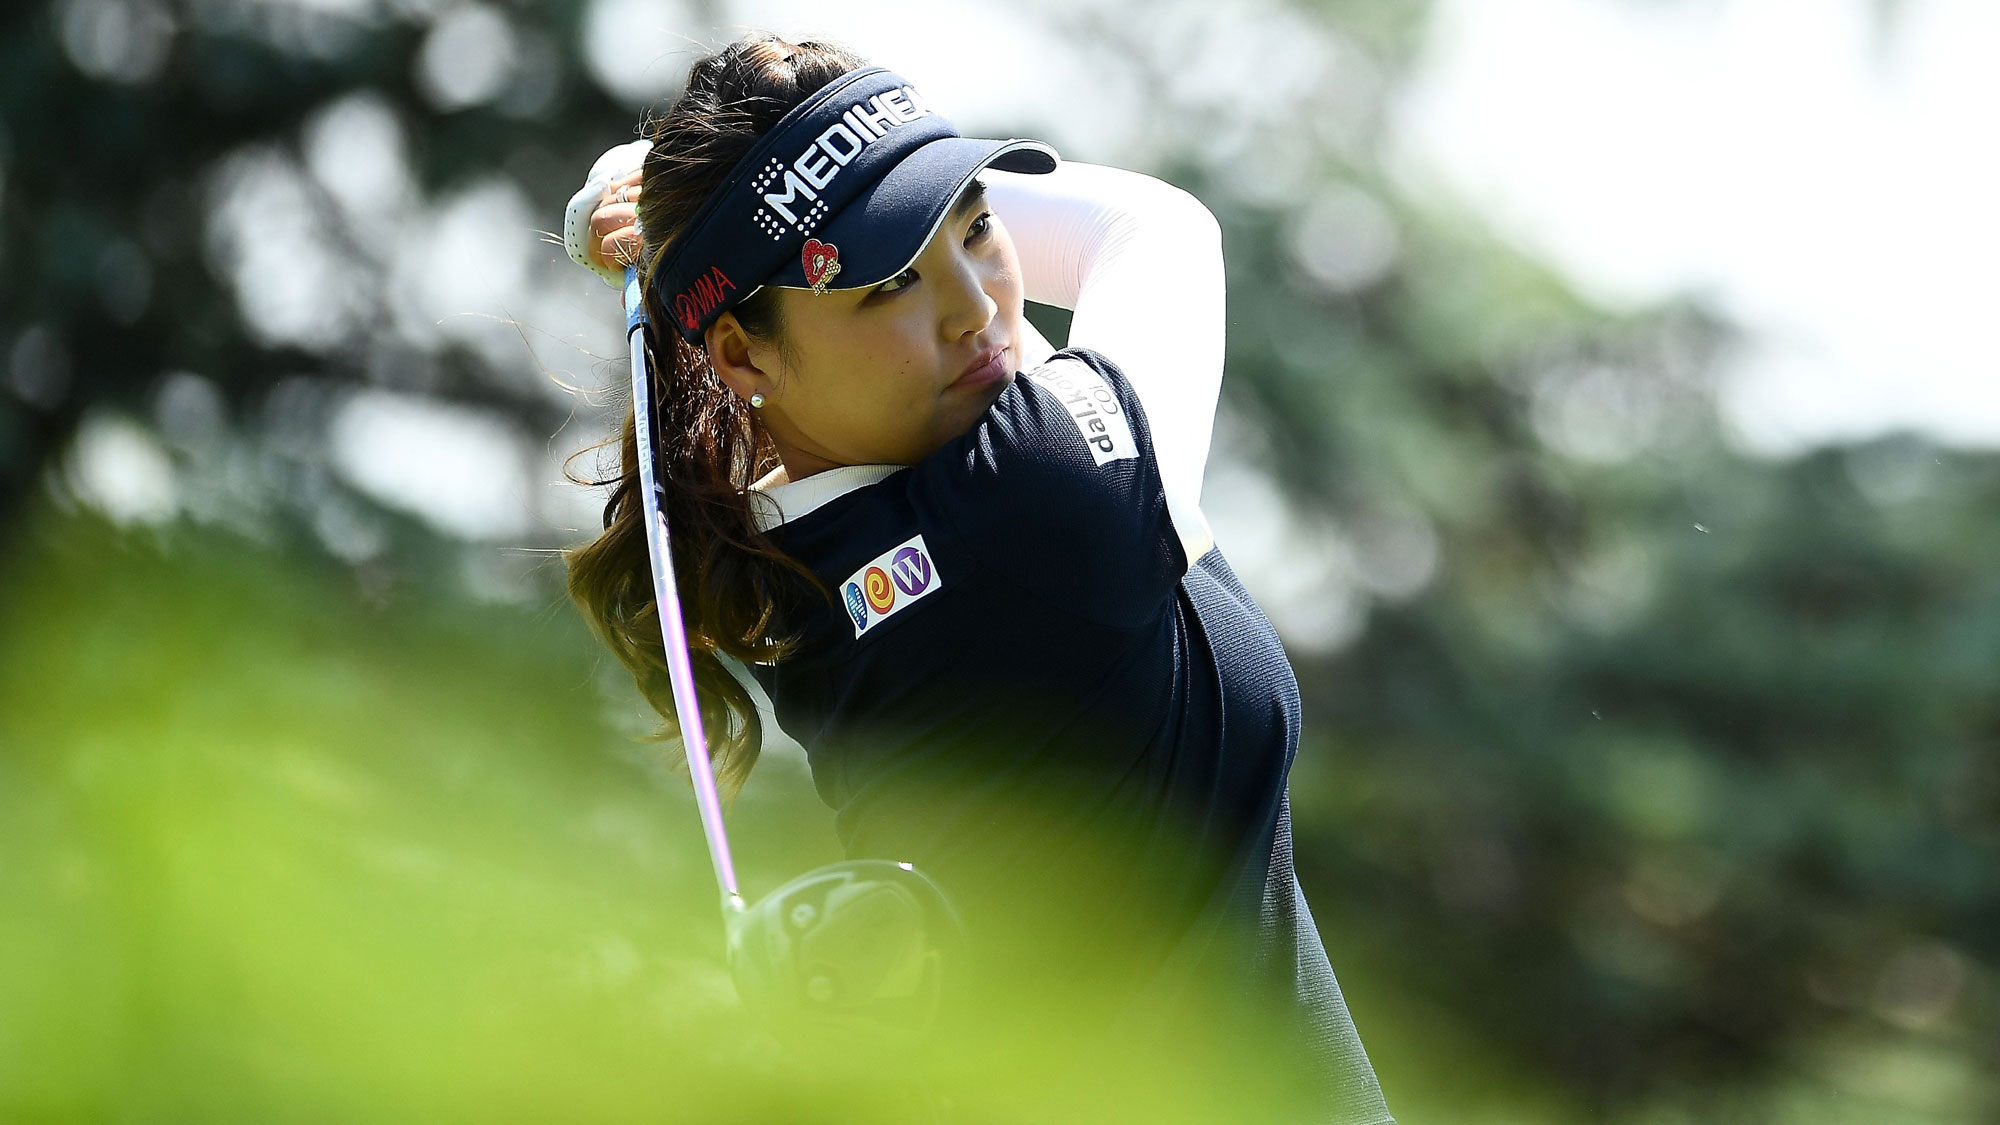 So Yeon Ryu Looking for First Win of Year at Meijer LPGA Classic